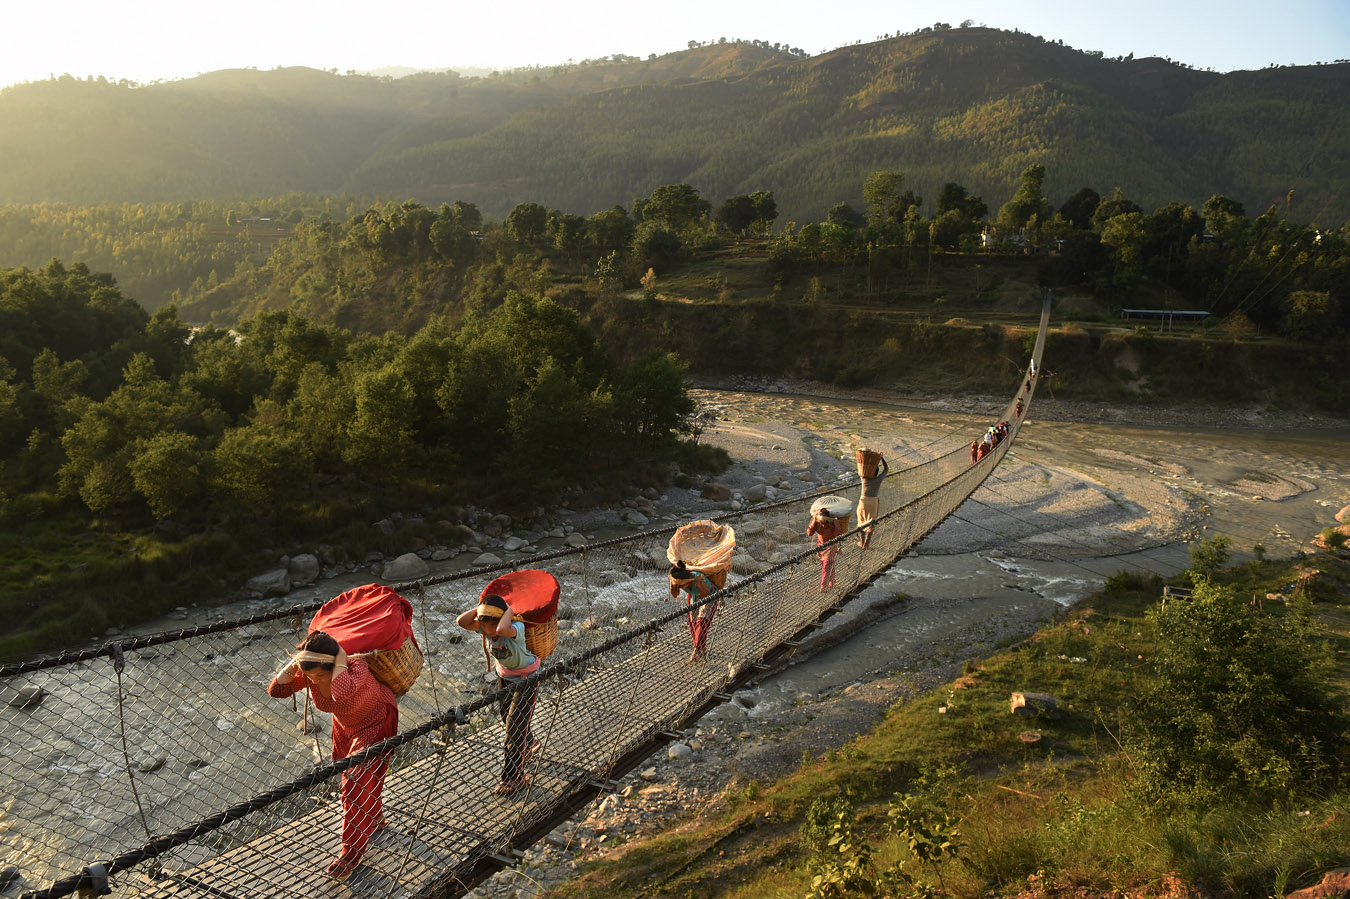 People cross a bridge on Sunday May 03, 2015 in the Nuwakot District of Nepal. A deadly earthquake in Nepal has killed thousands. (Photo by Matt McClain/ The Washington Post)